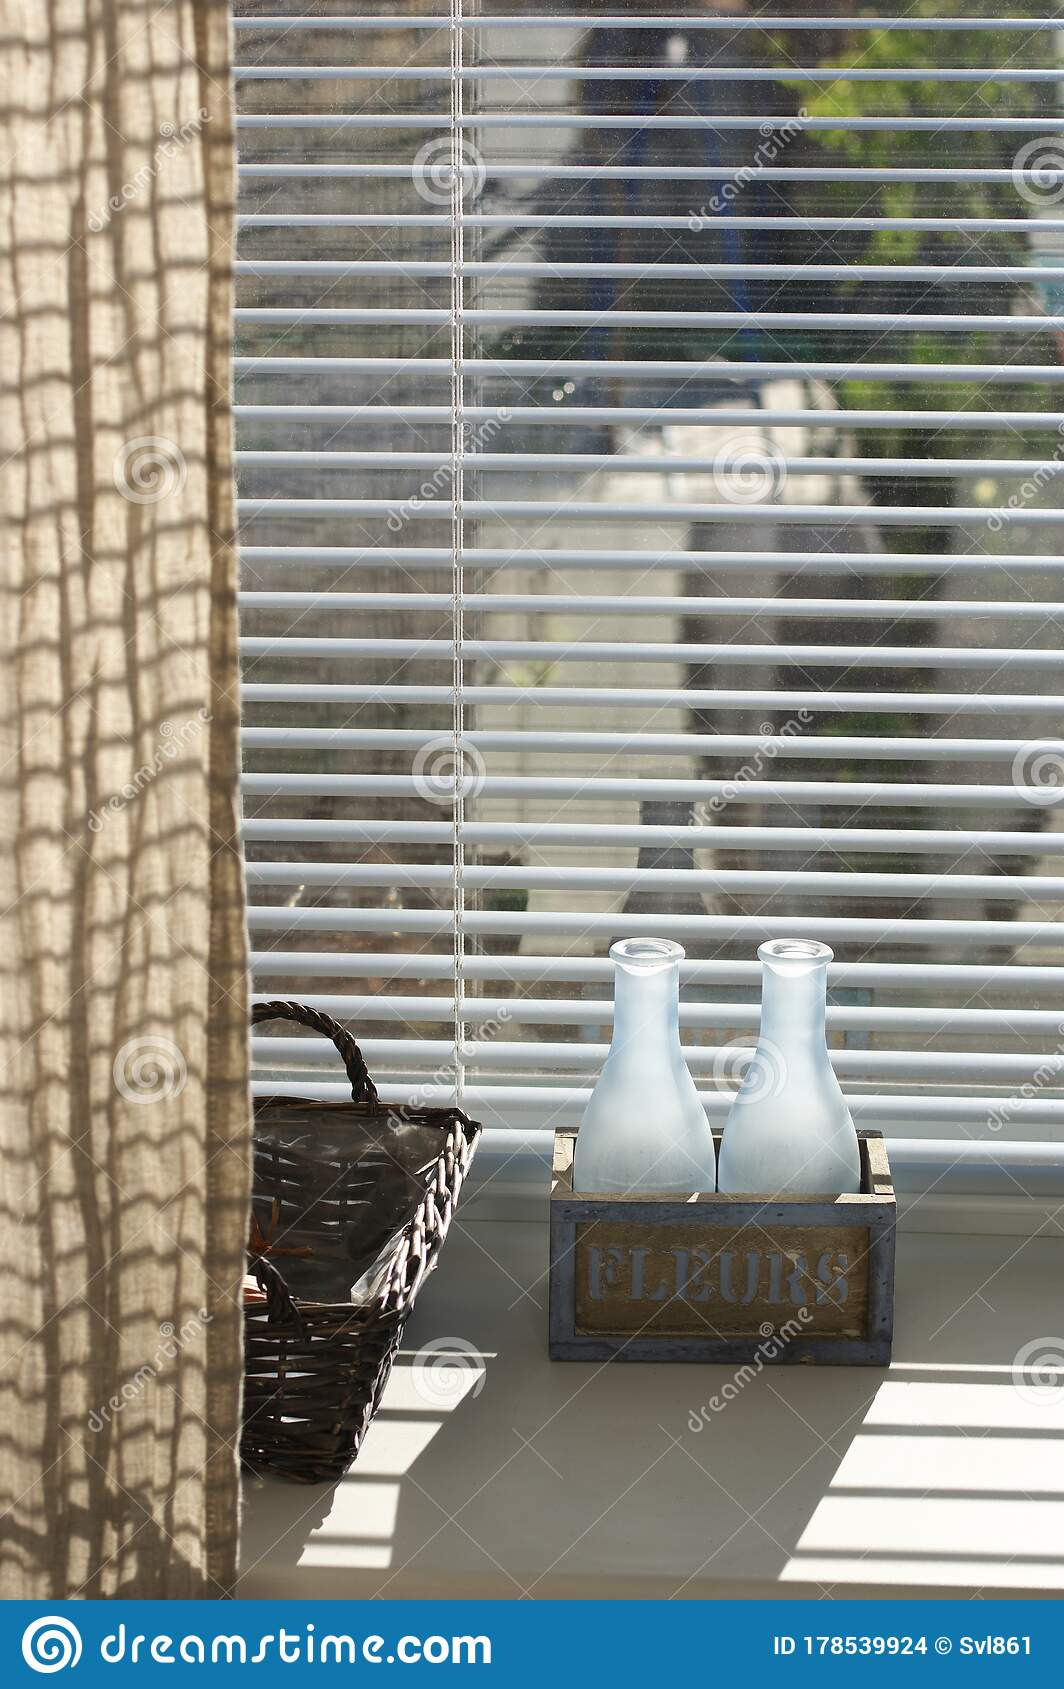 Rustic Home Decor On Window With Blinds Stock Photo - Image of